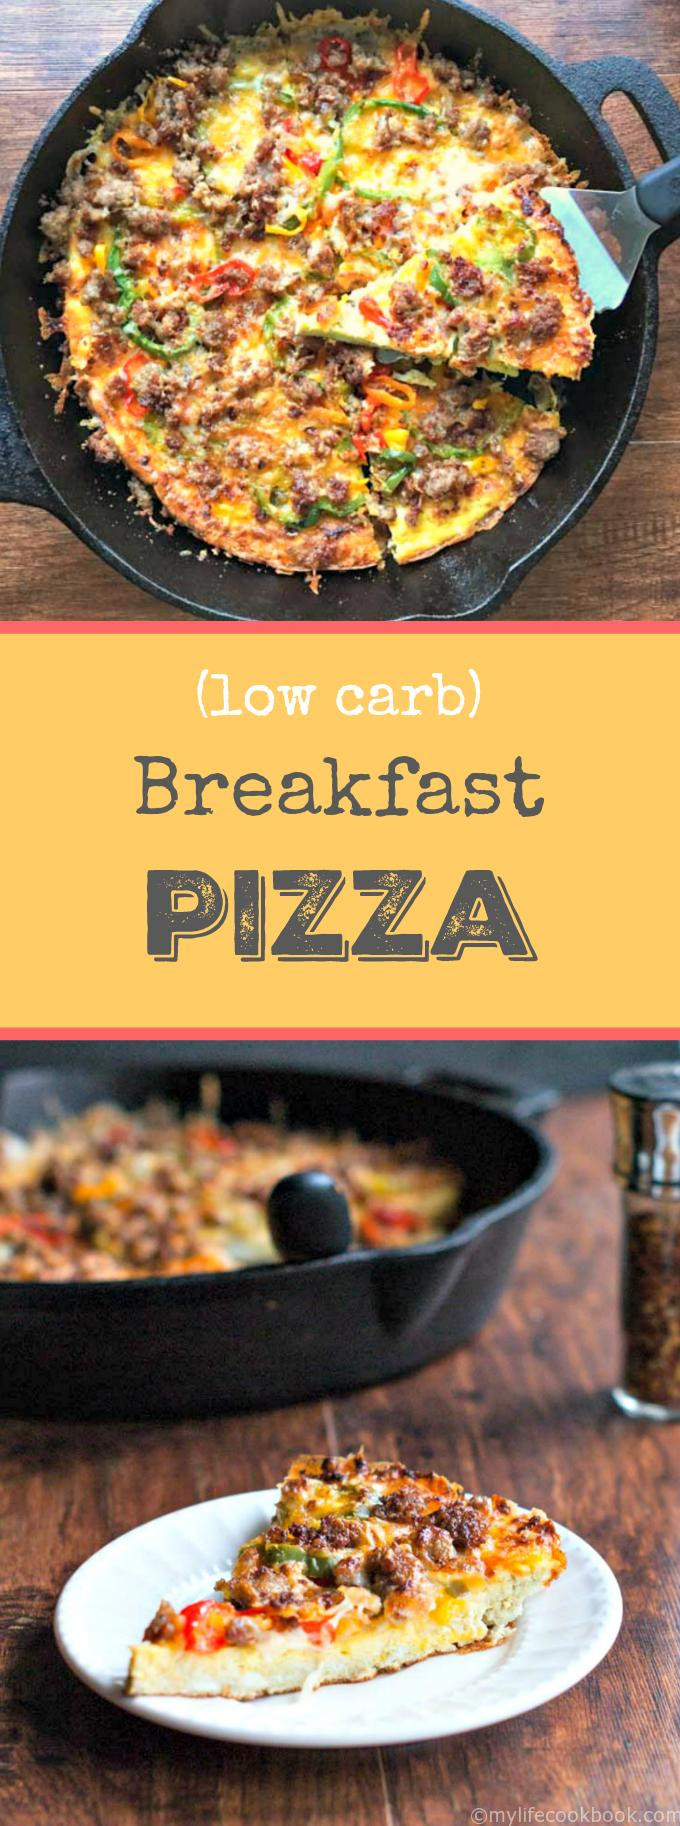 Lo Carb Recipes Breakfast  Low Carb Breakfast Pizza